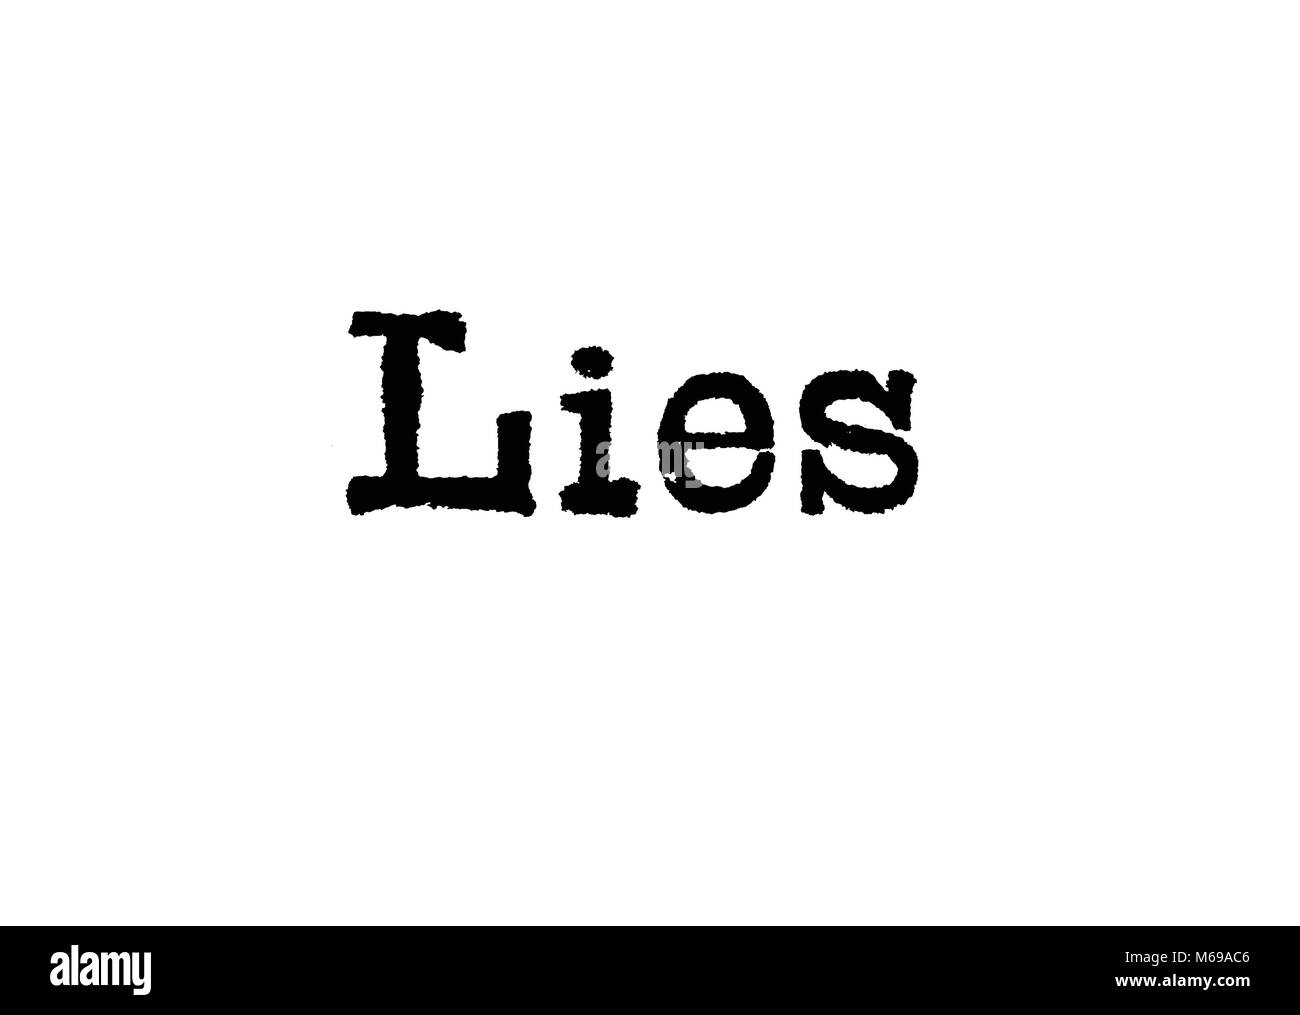 The word Lies from a typewriter on a white background - Stock Image